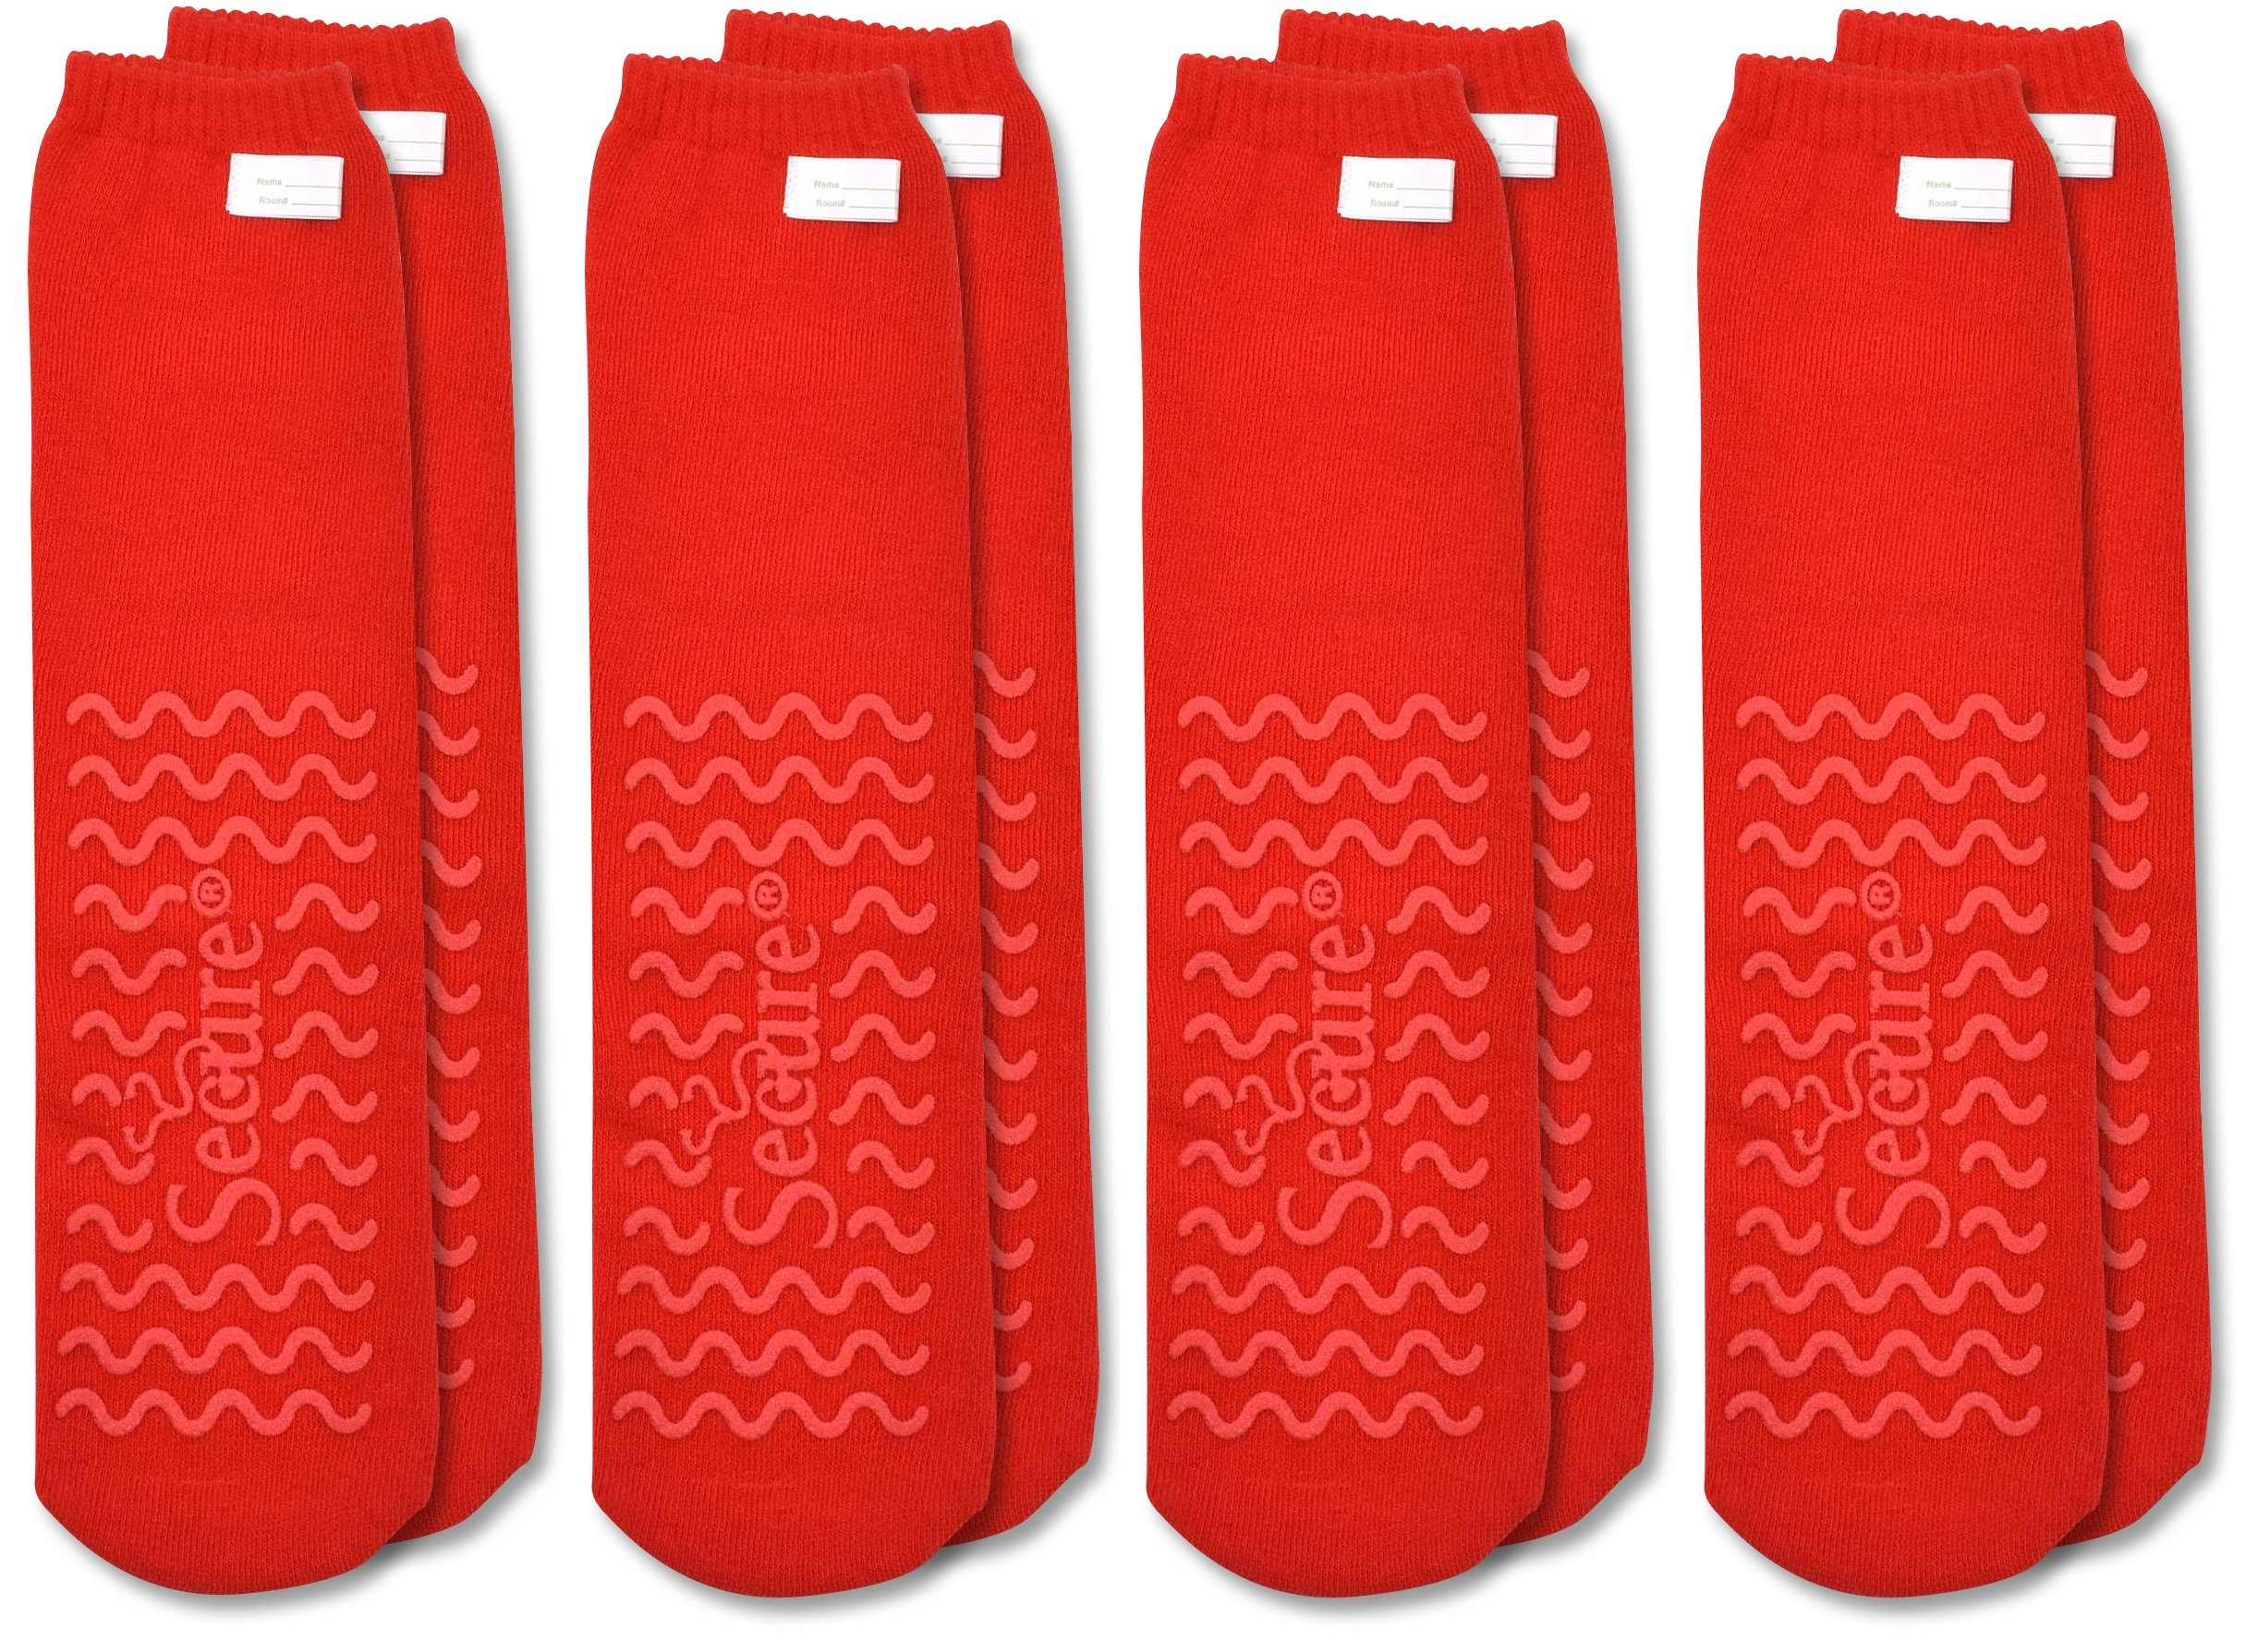 Secure (4 Pairs) Ultra Soft Non Slip Grip Slipper Socks, Red - Fall Injury Prevention Hospital Tread Sock for Safety, Comfort and Warmth